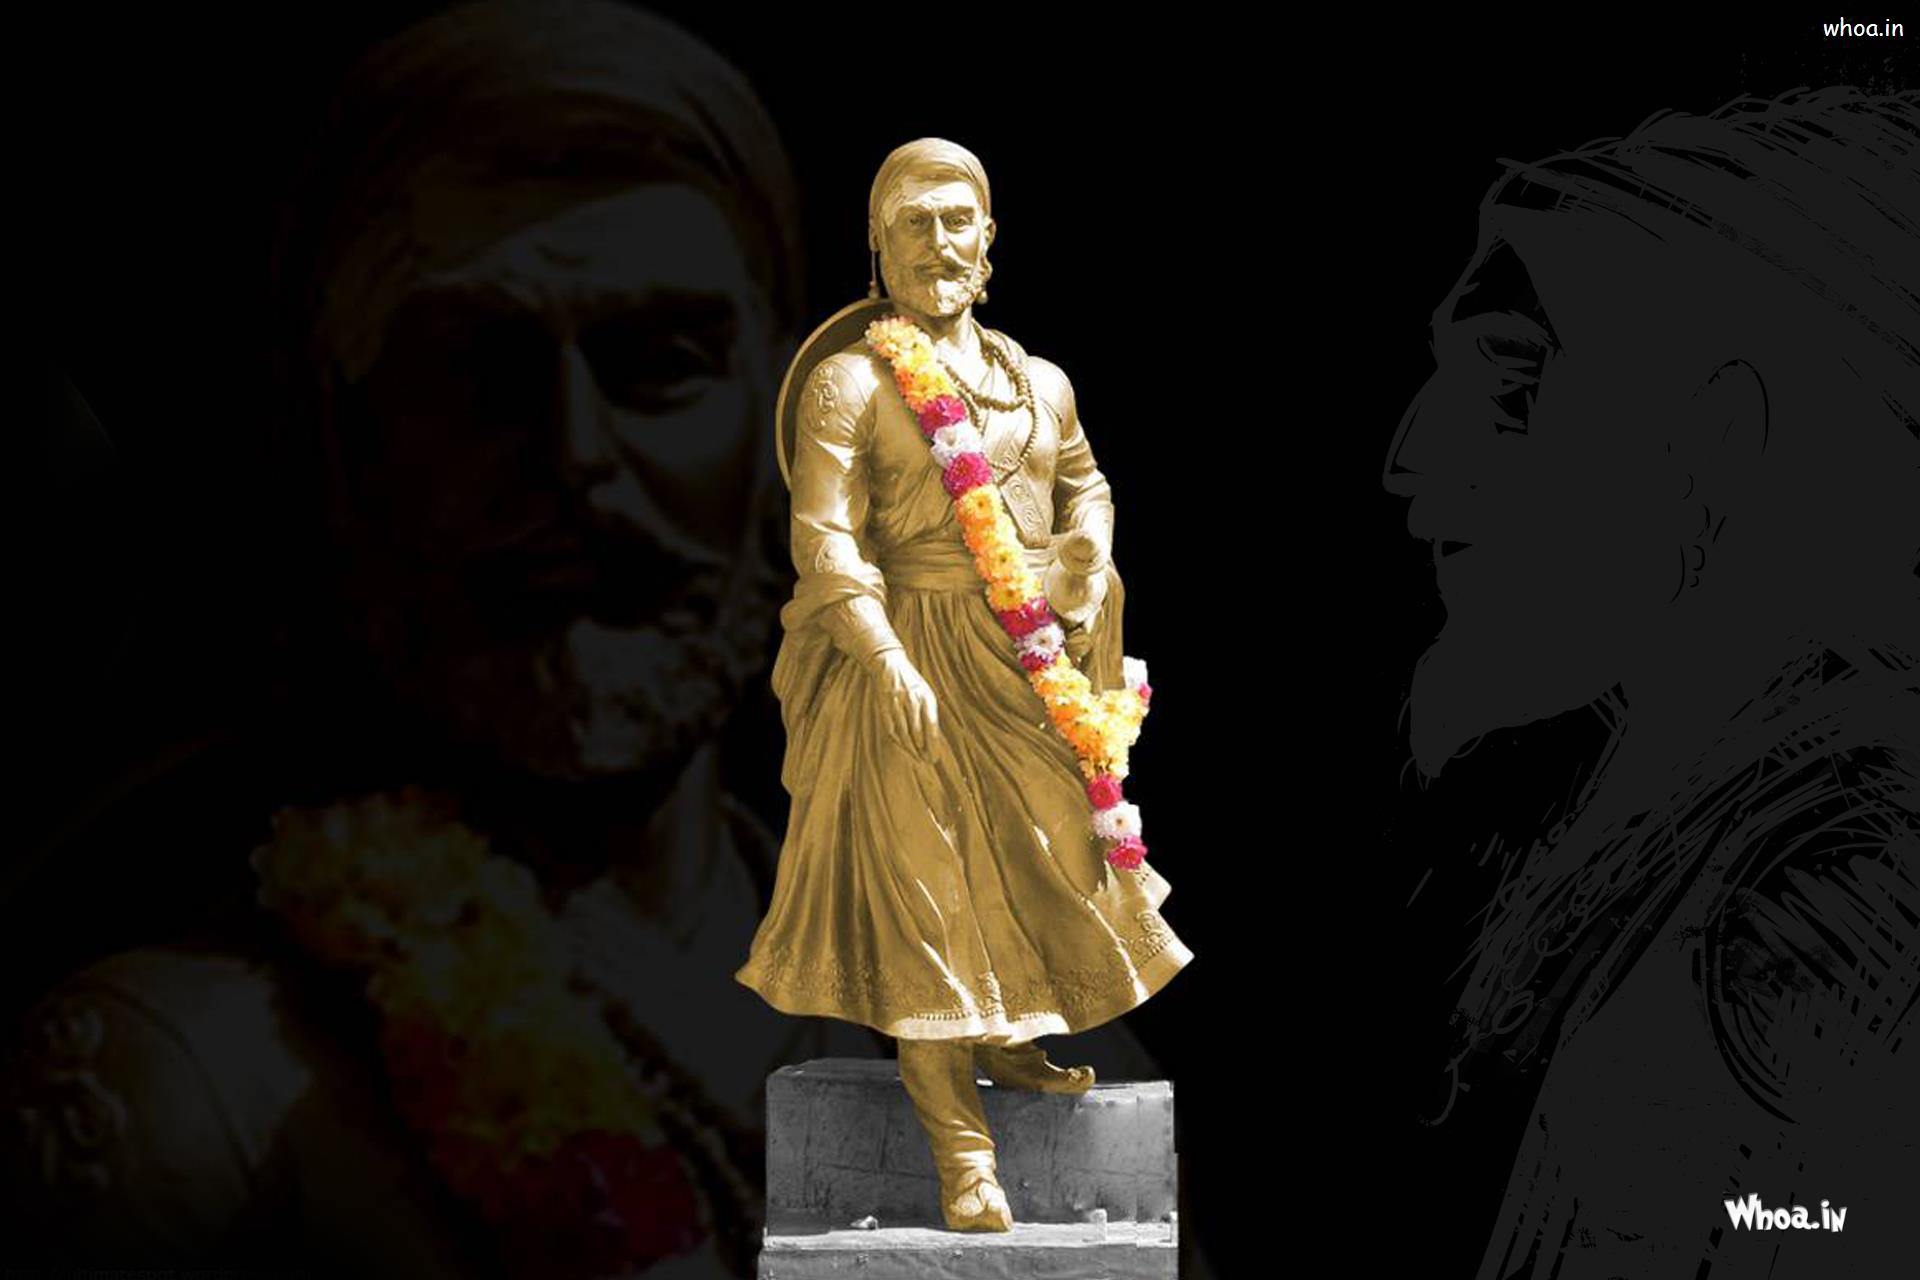 Hd wallpaper shivaji maharaj -  Hd Wallpaper Chatrapati Shivaji Maharaj Standing Statue With Dark Background Image